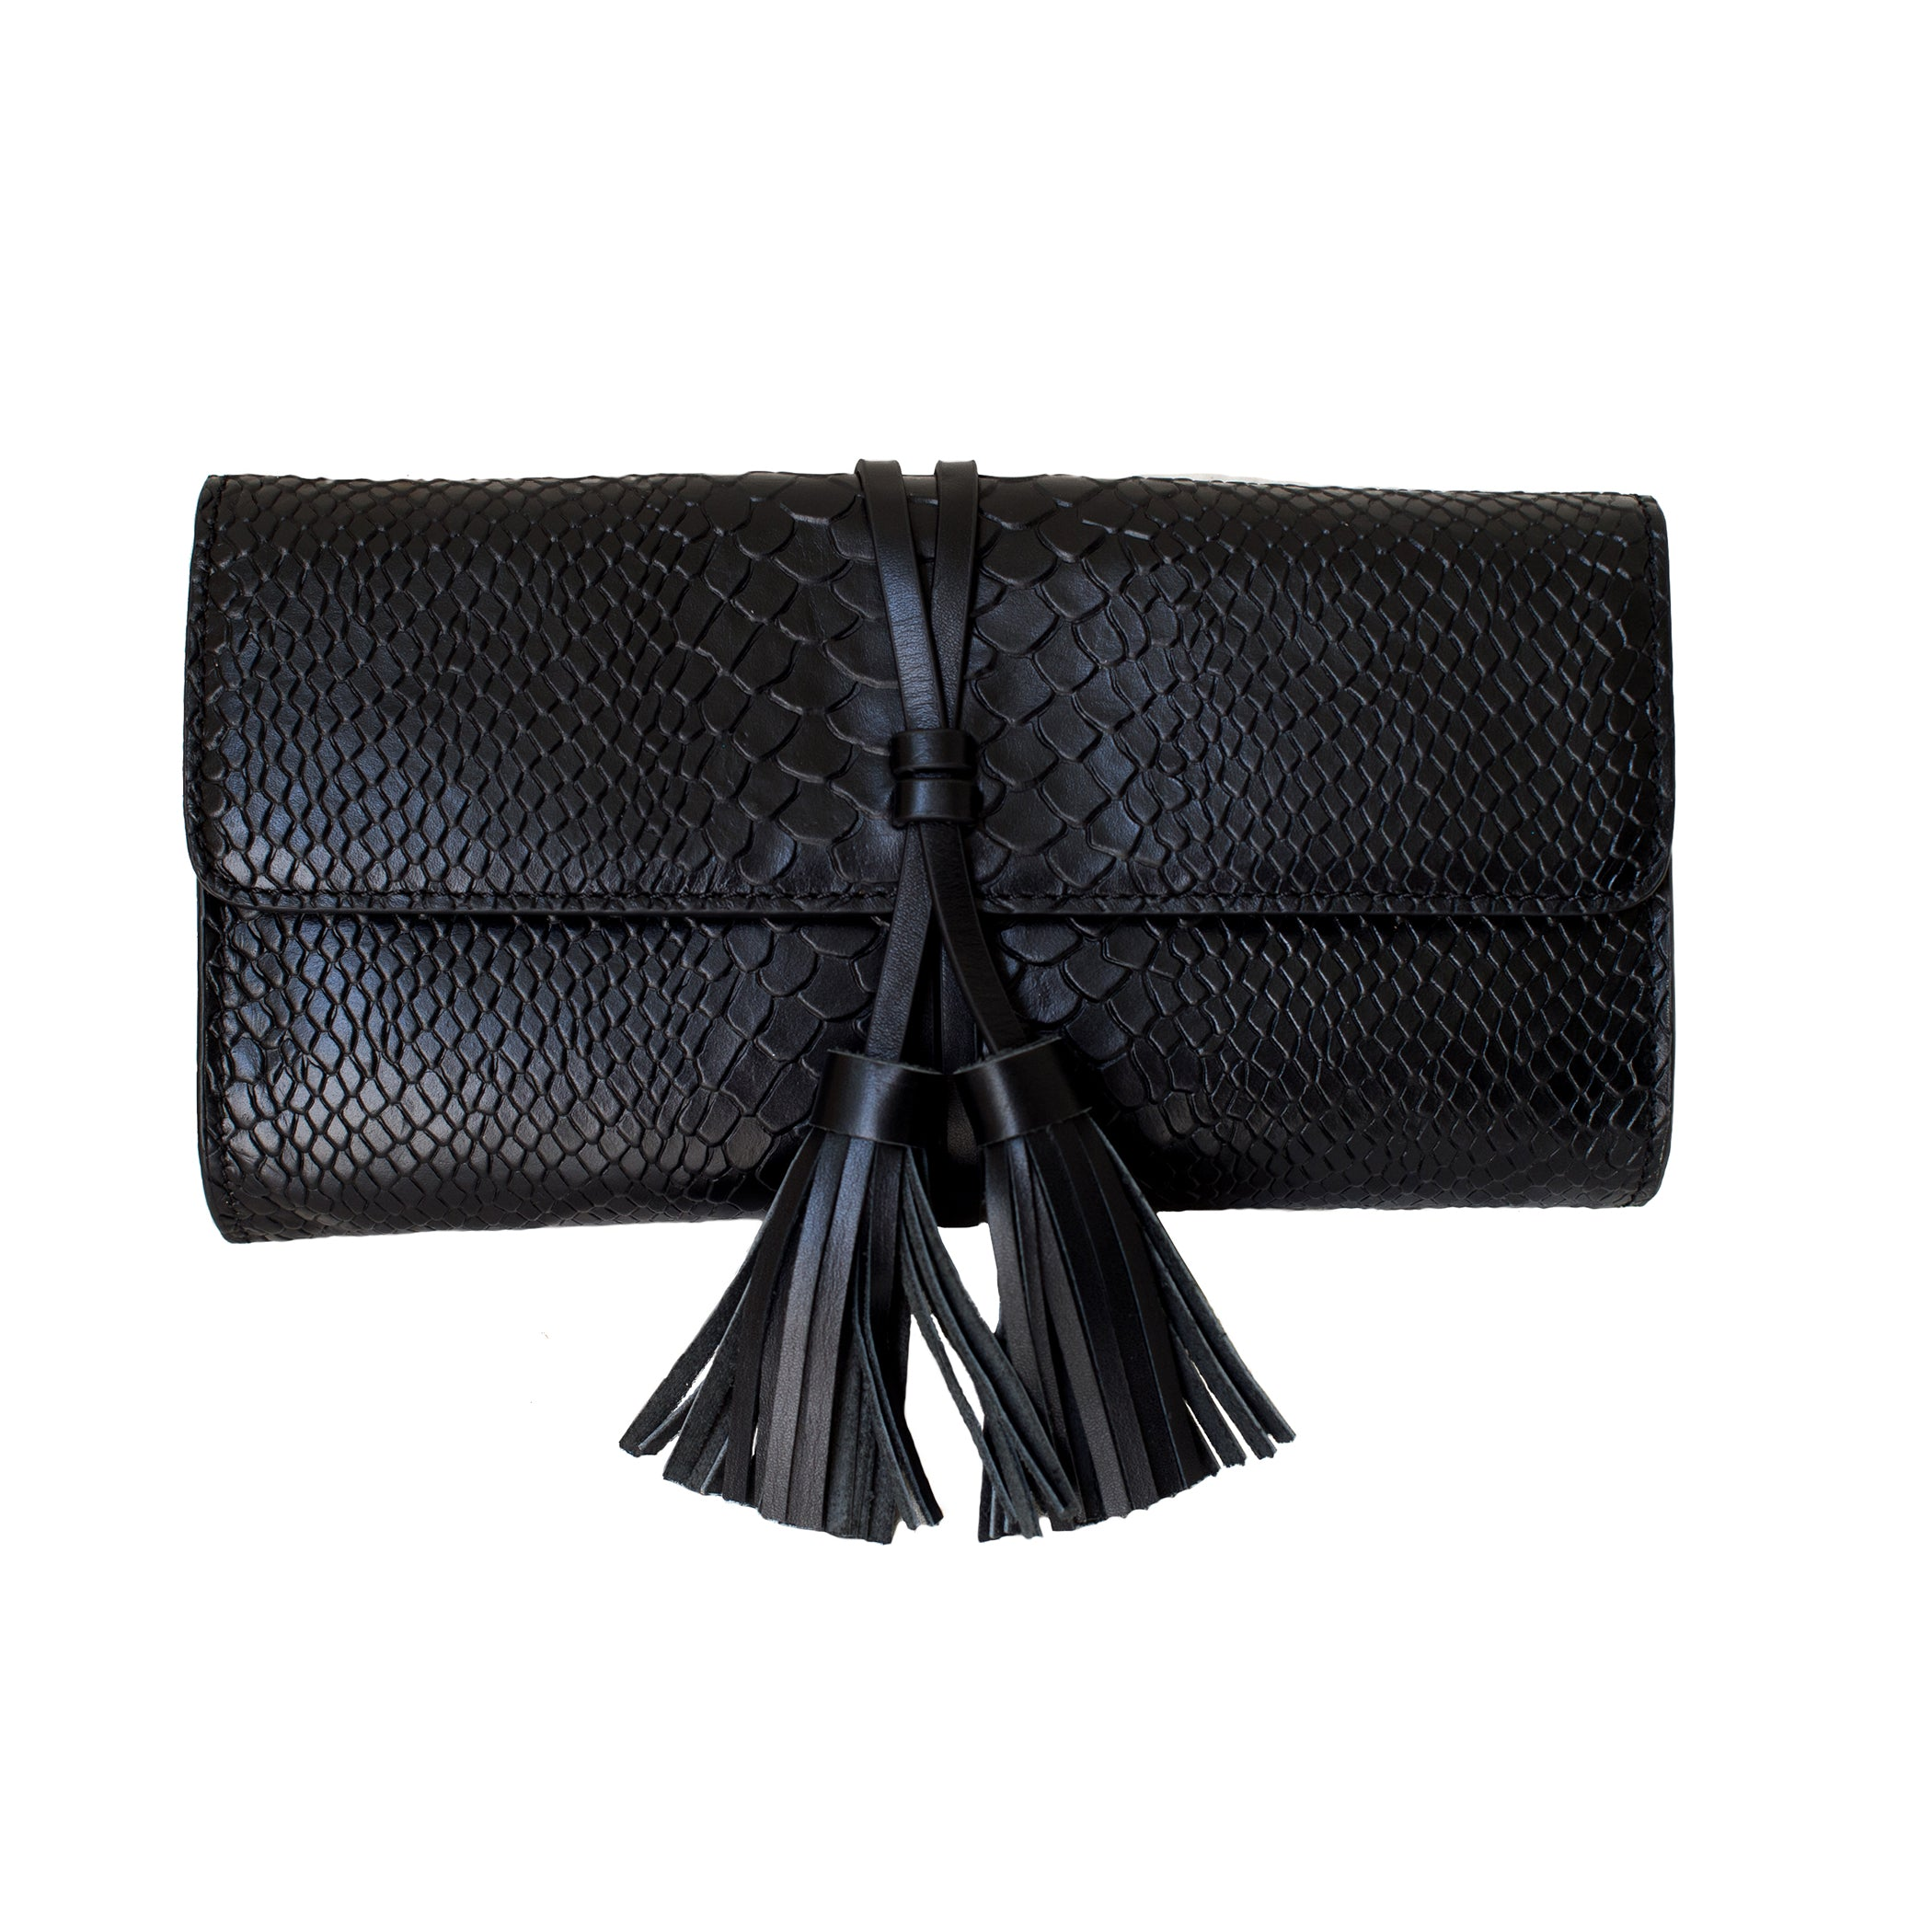 Black Python Leather Tassel Clutch - Elizabeth Ackerman New York